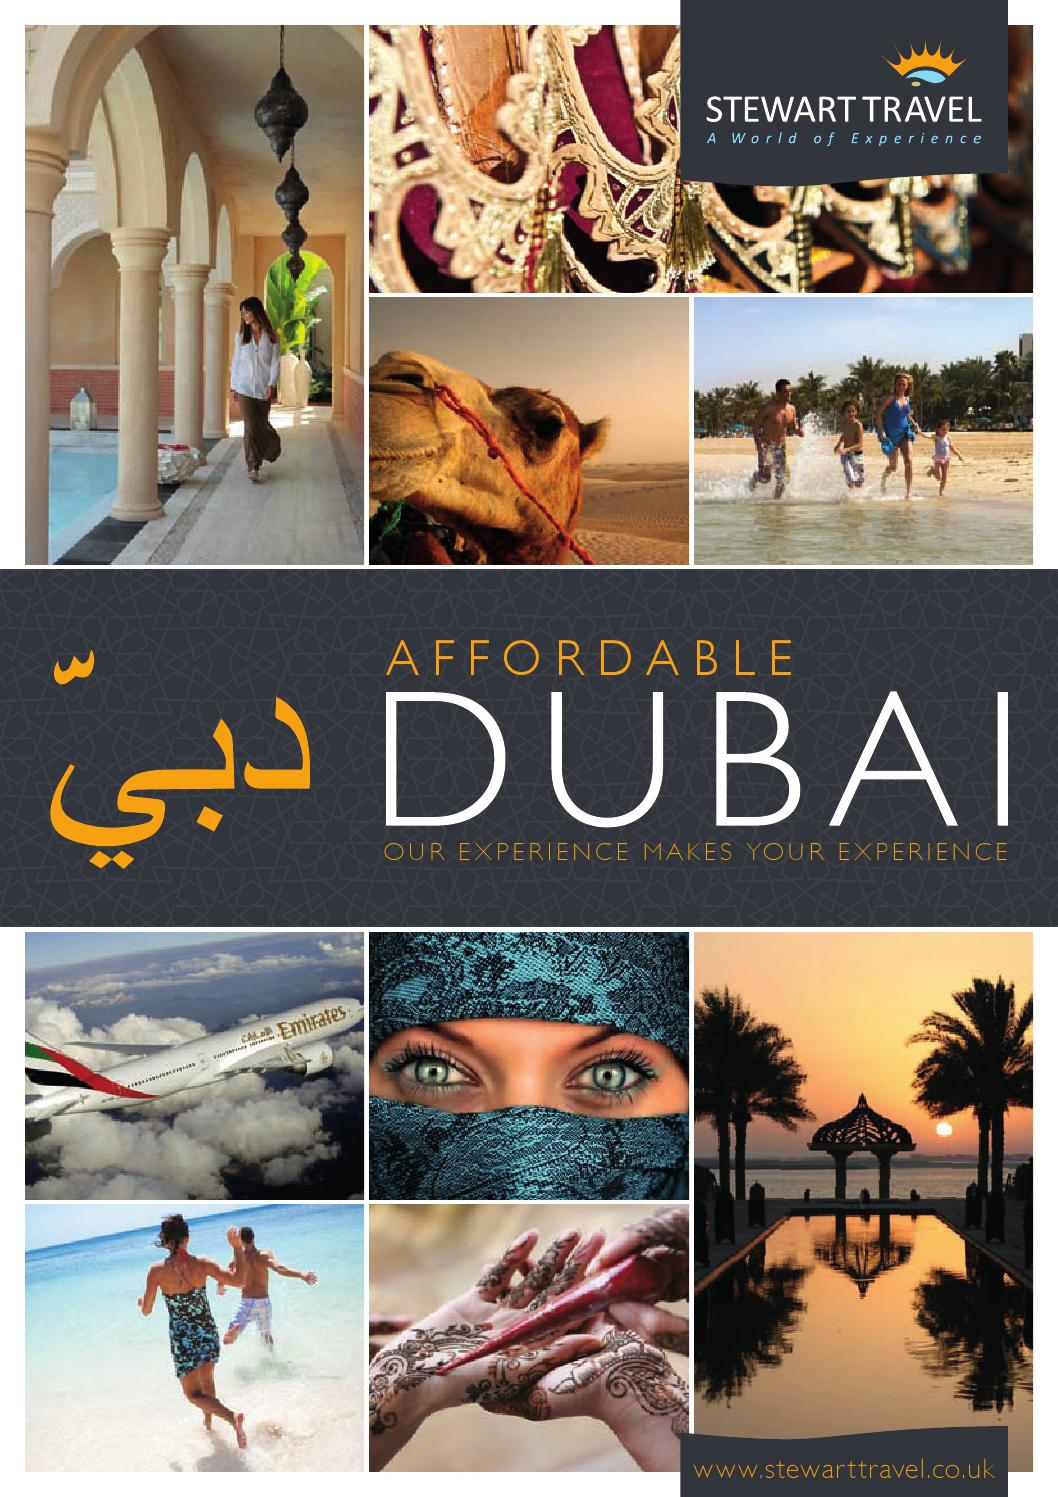 stewart travel dubai brochure by greg mcintyre